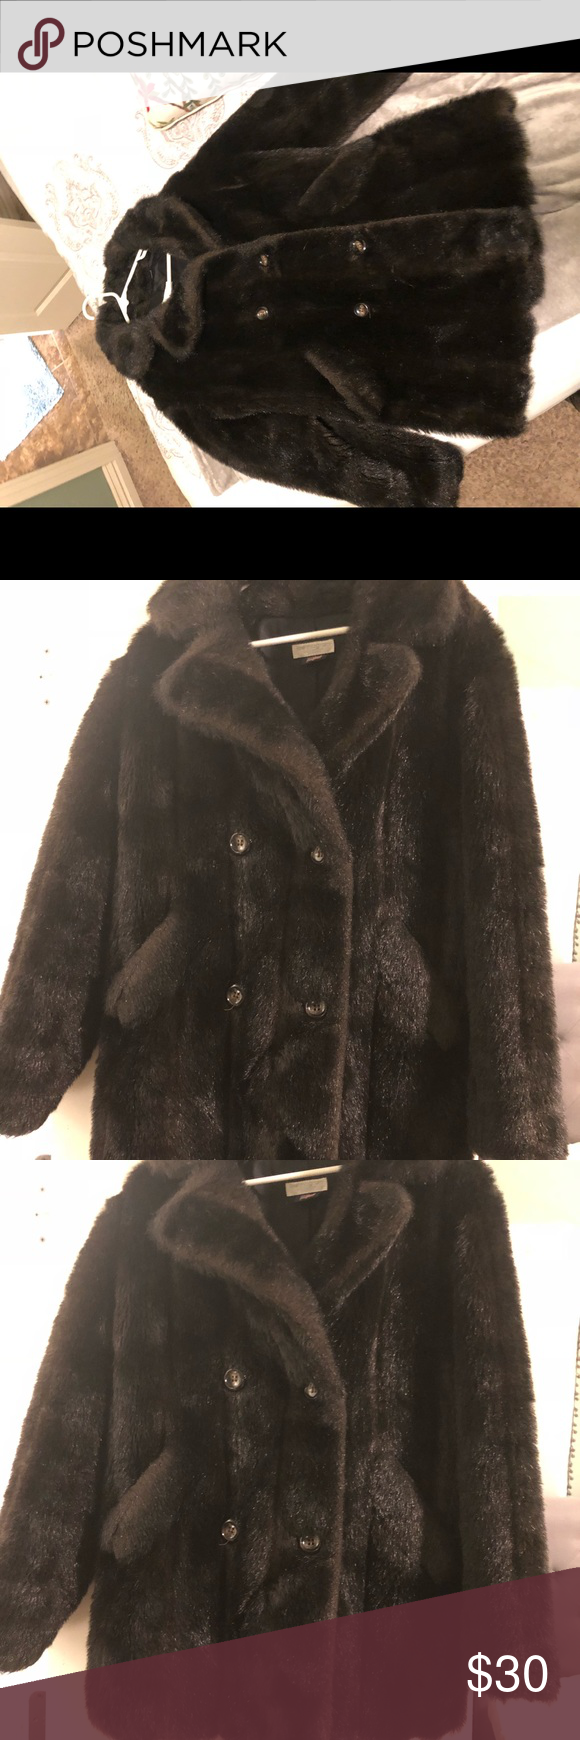 1645dcc26 Lew Magram connection vintage faux fur coat Made in the USA! lew magram  Jackets & Coats Pea Coats